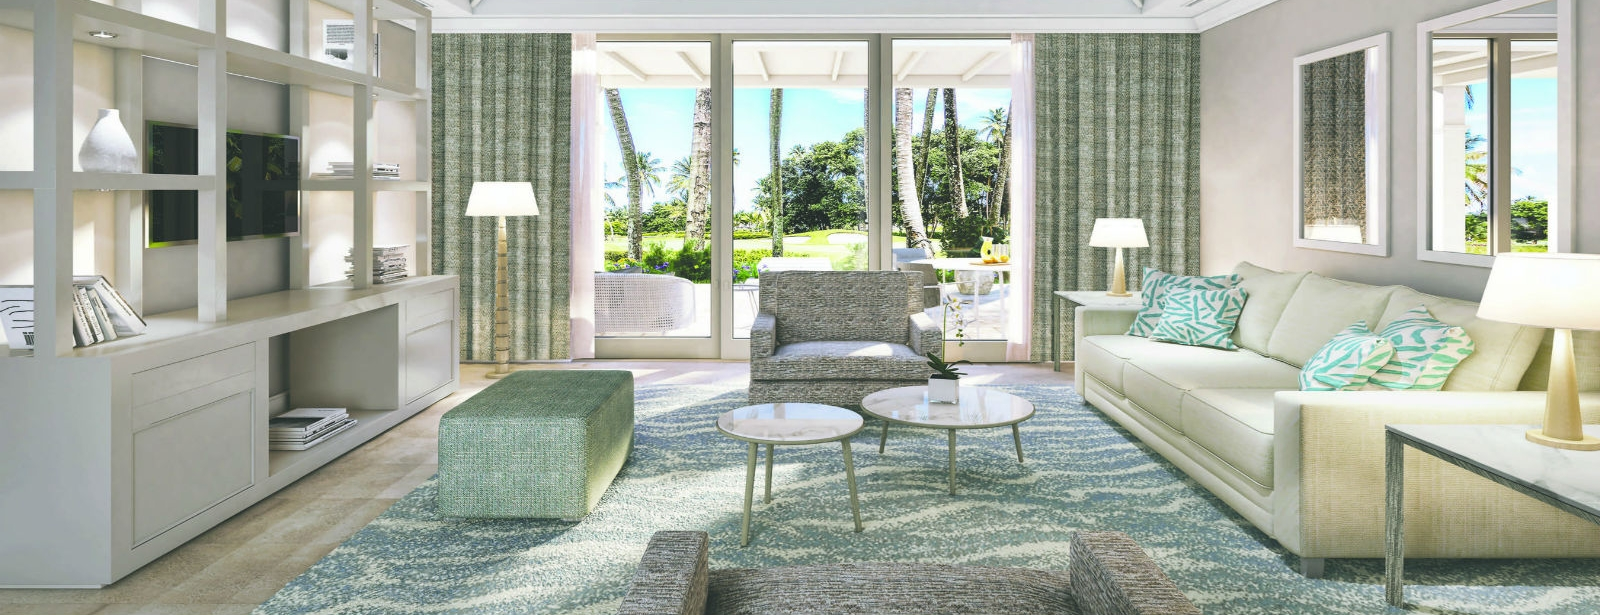 St. Regis Suite  - The St. Regis Bahia Beach Resort